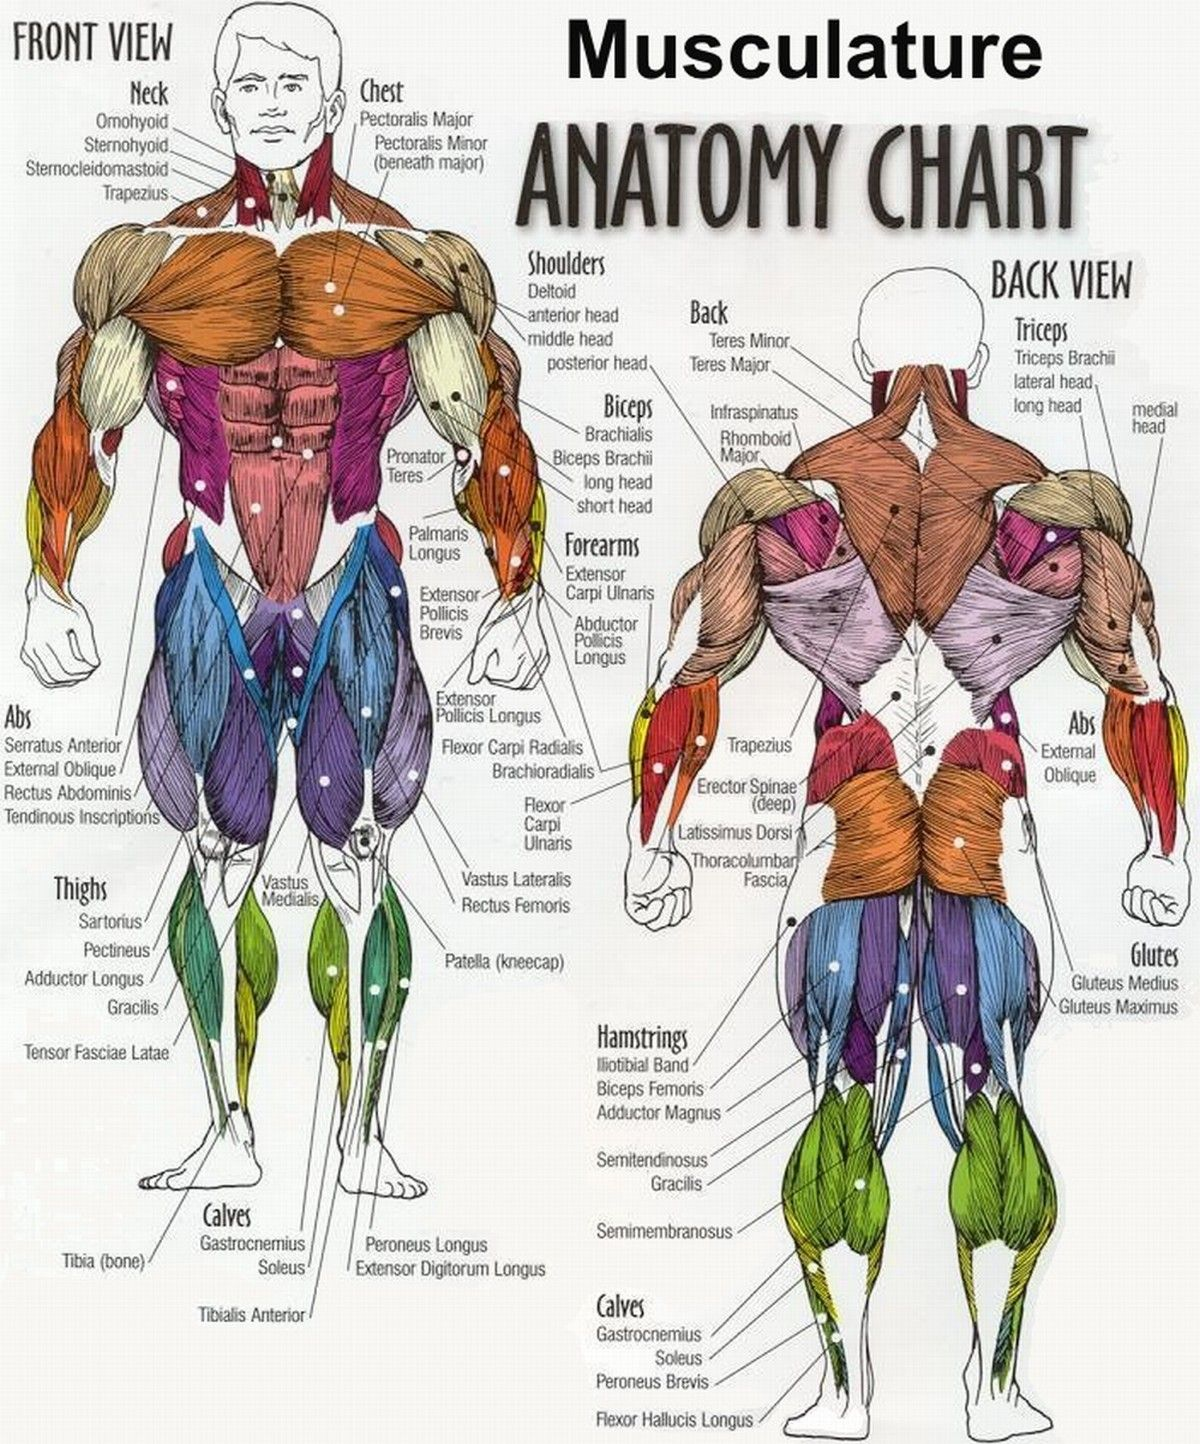 body building / fitness motivation | fitness | pinterest | fitness, Muscles